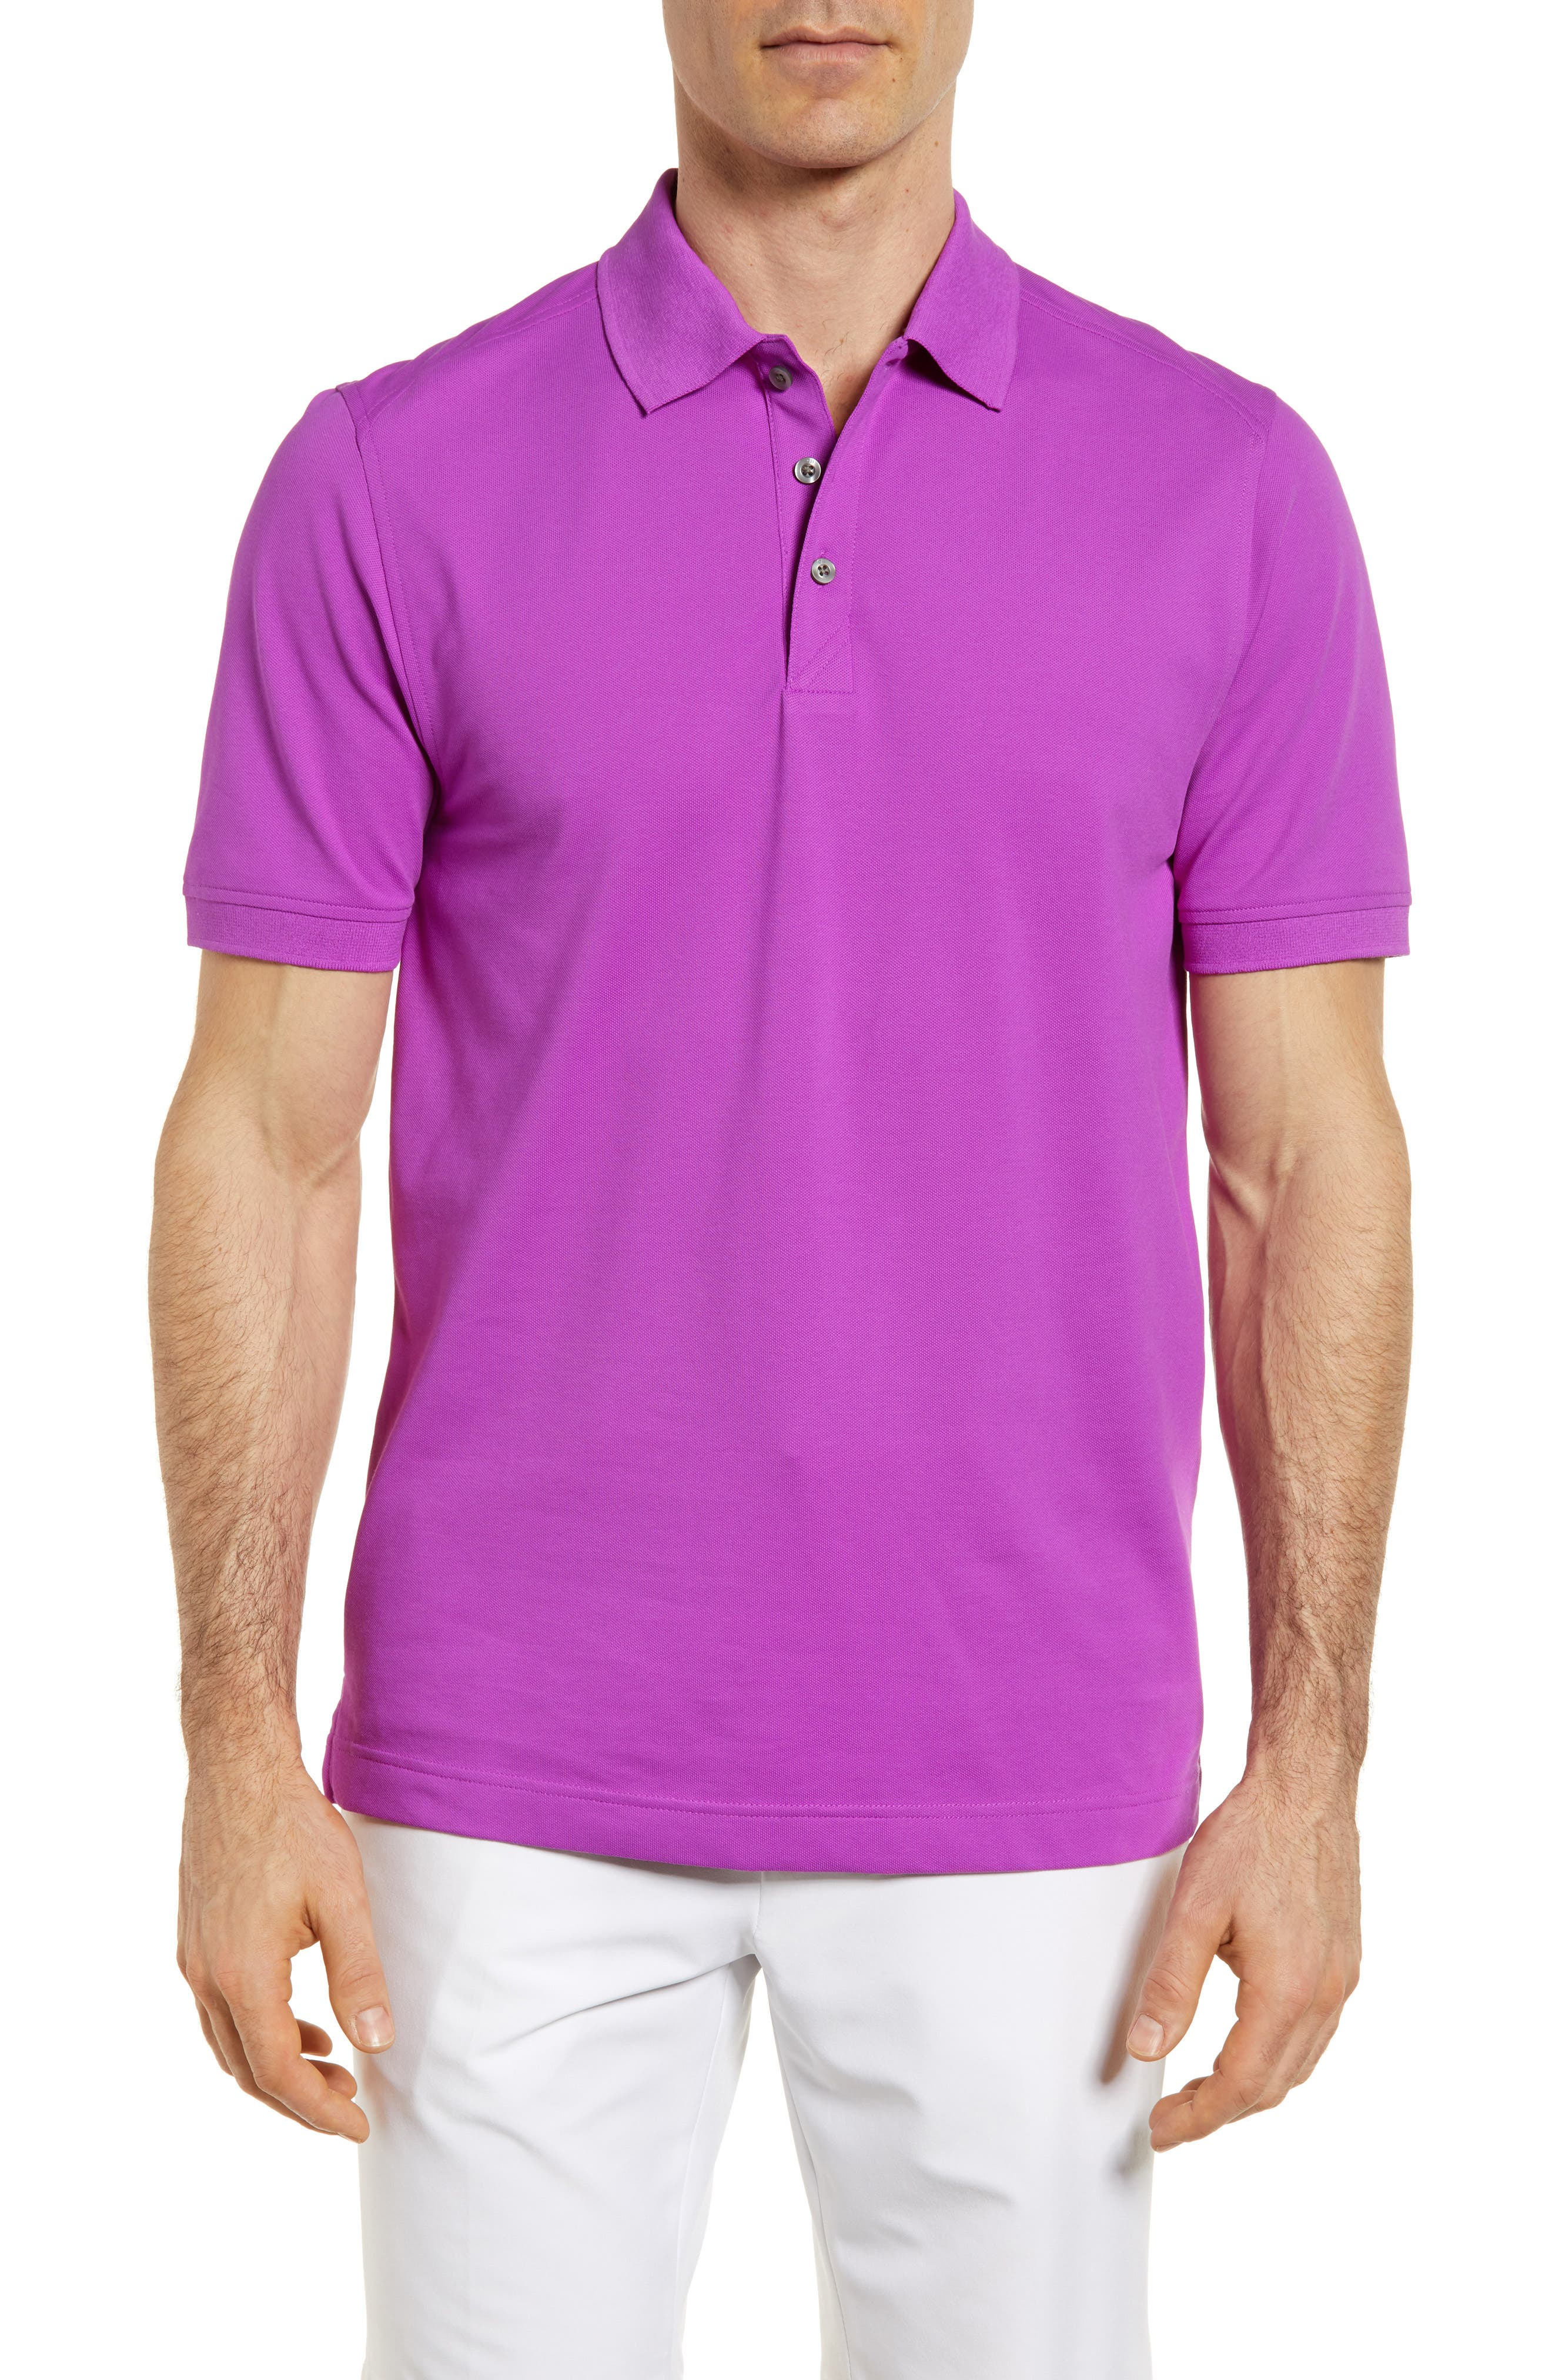 Alternate Image 1 Selected - Cutter & Buck Advantage Golf Polo